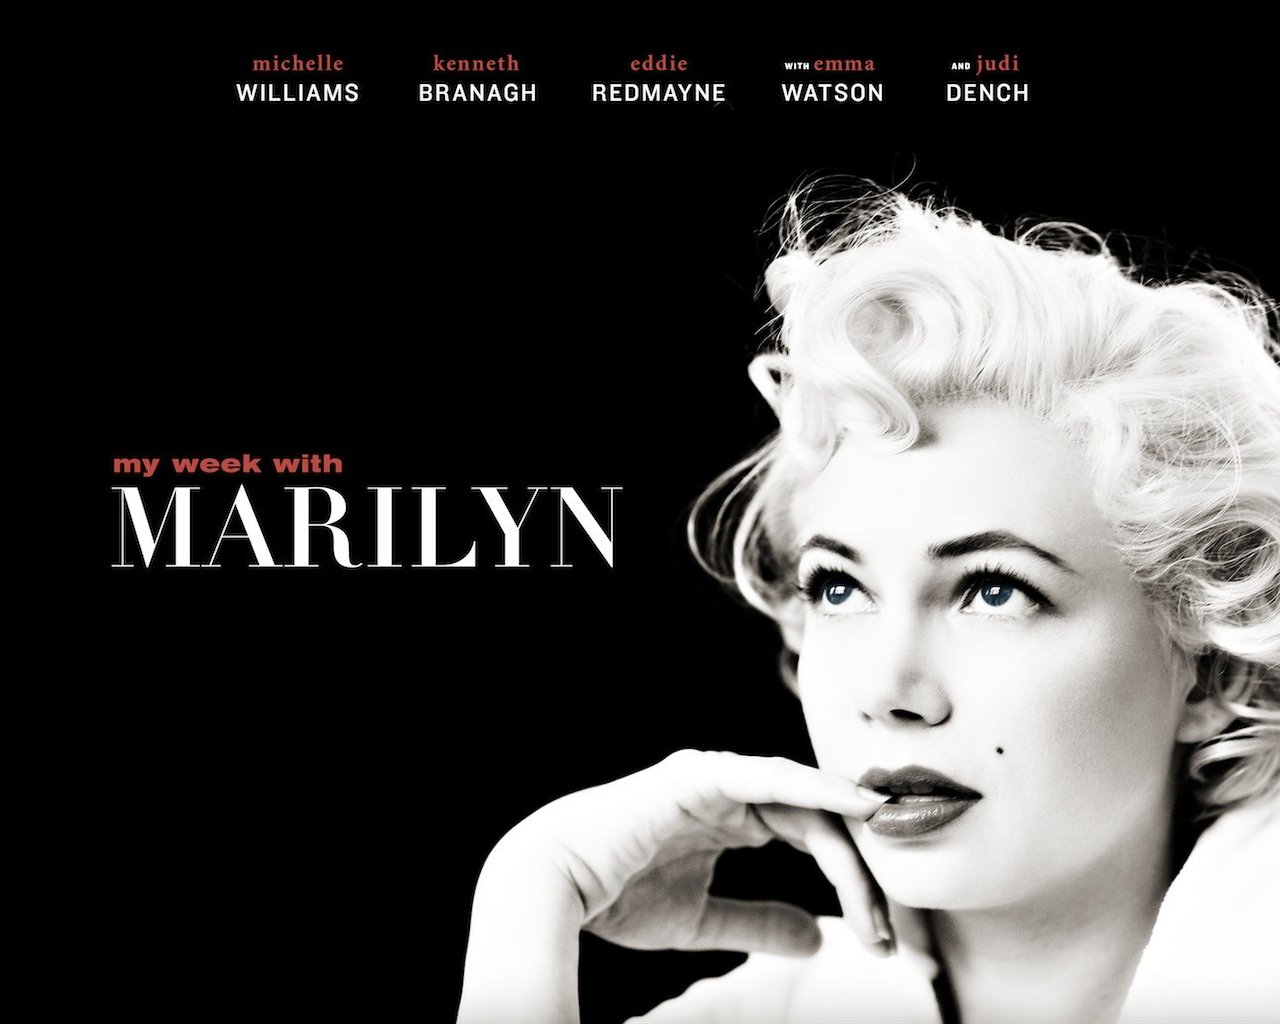 http://2.bp.blogspot.com/-GCSduzamS8Y/T0fEzh_AXrI/AAAAAAAAIQo/7TR2bpEH2qE/s1600/My-Week-with-Marilyn-Wallpaper-02.jpg